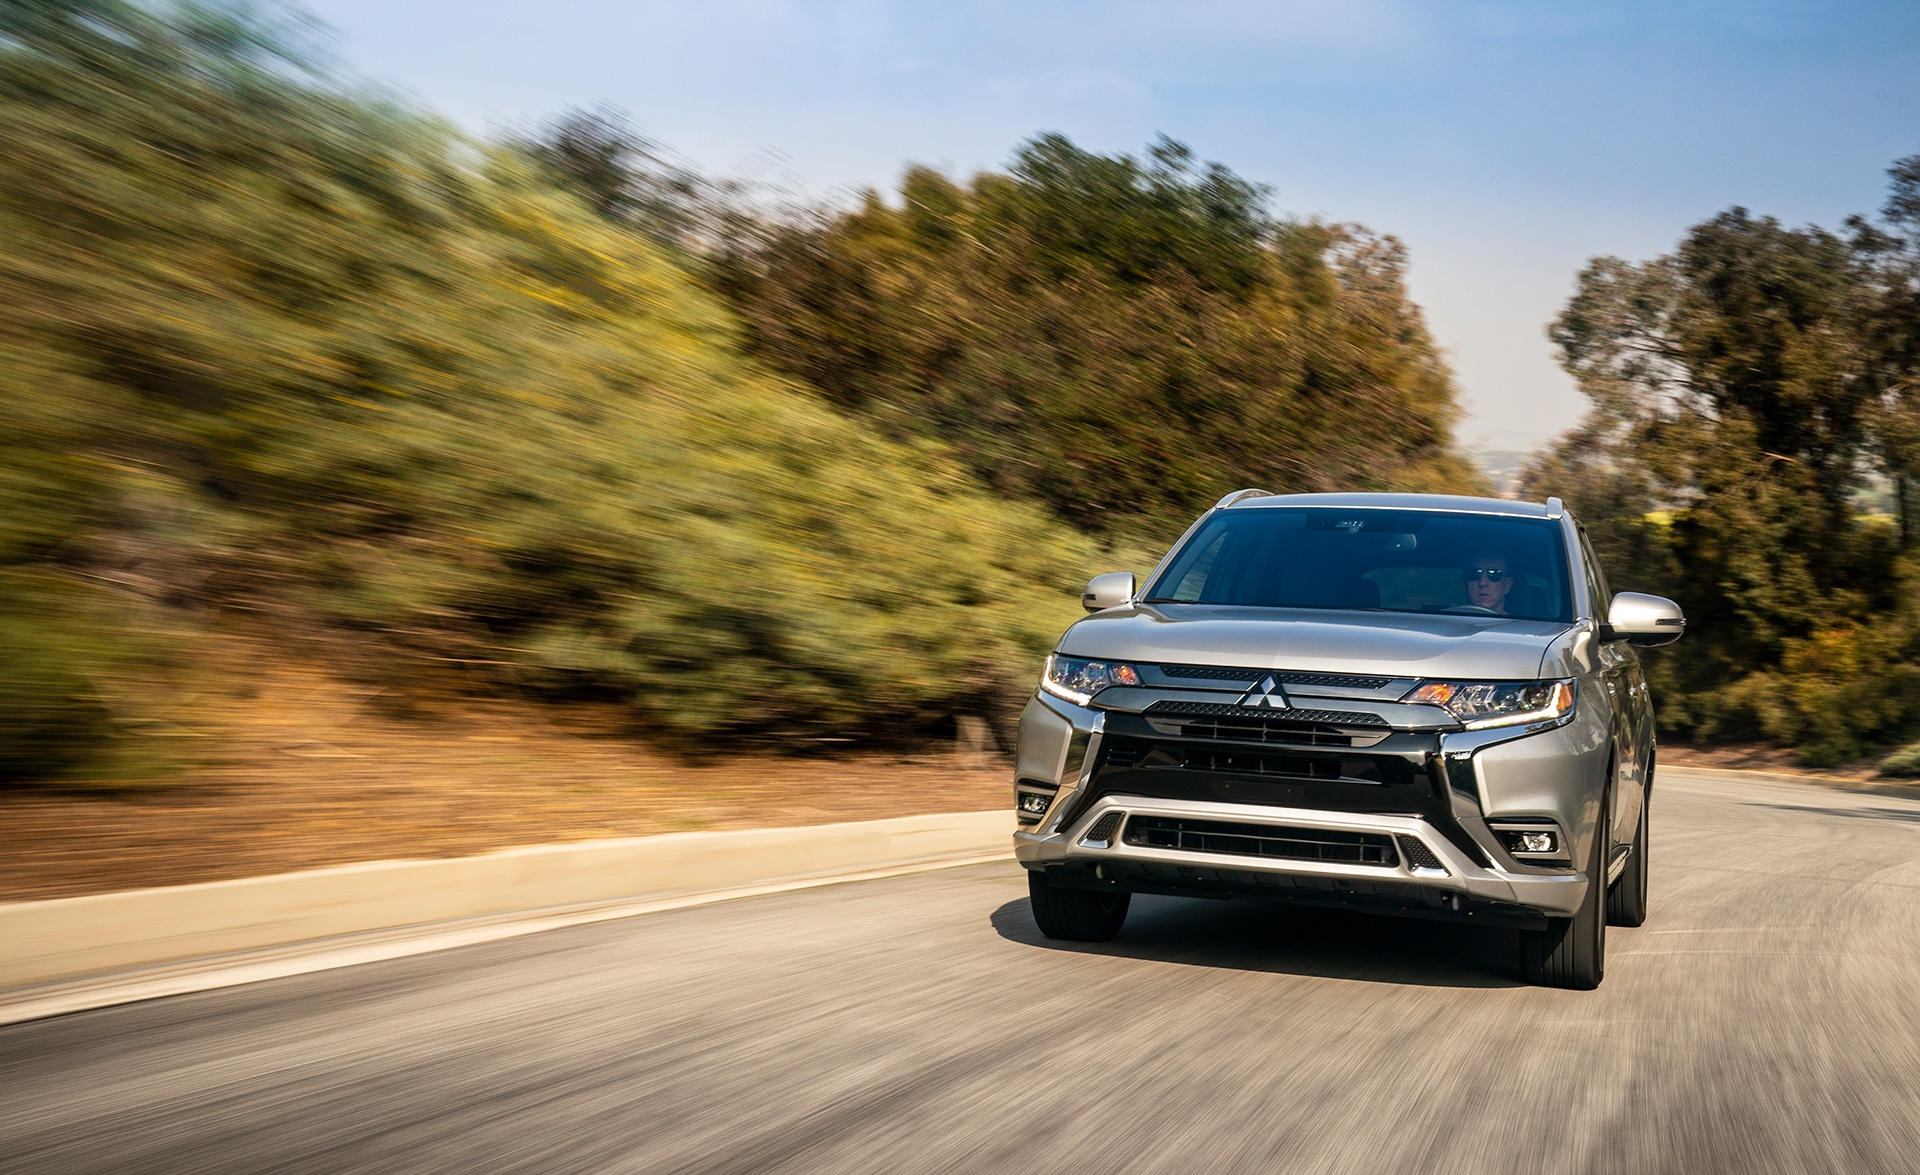 2021 mitsubishi outlander phev getting larger 24liter